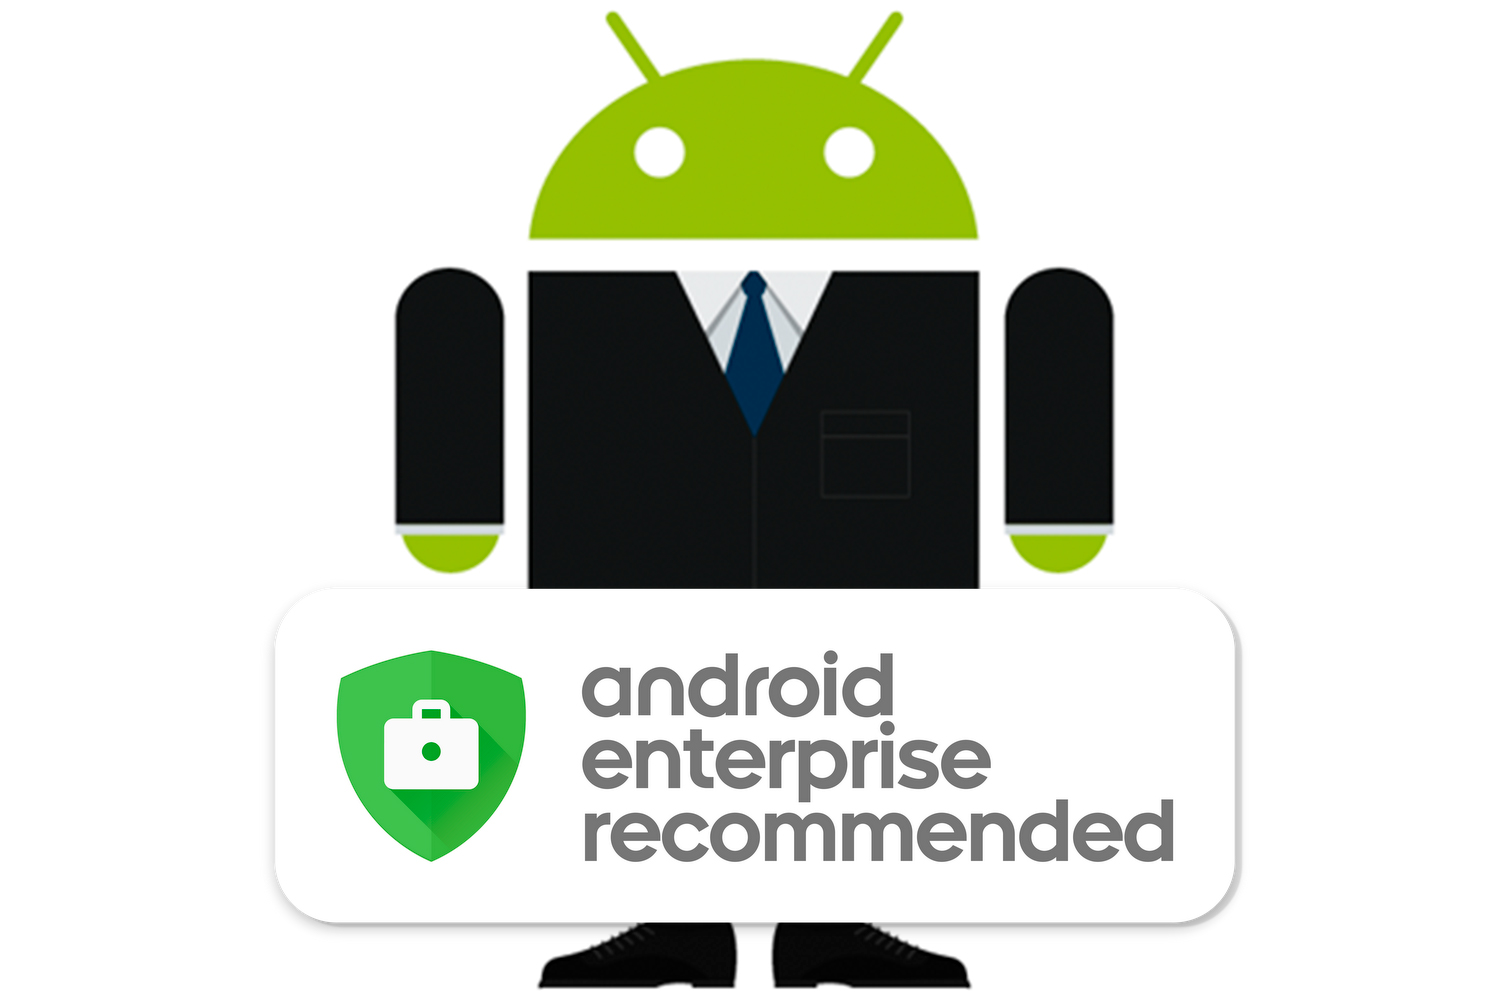 Android Enterprise Recommended: All the Big Details